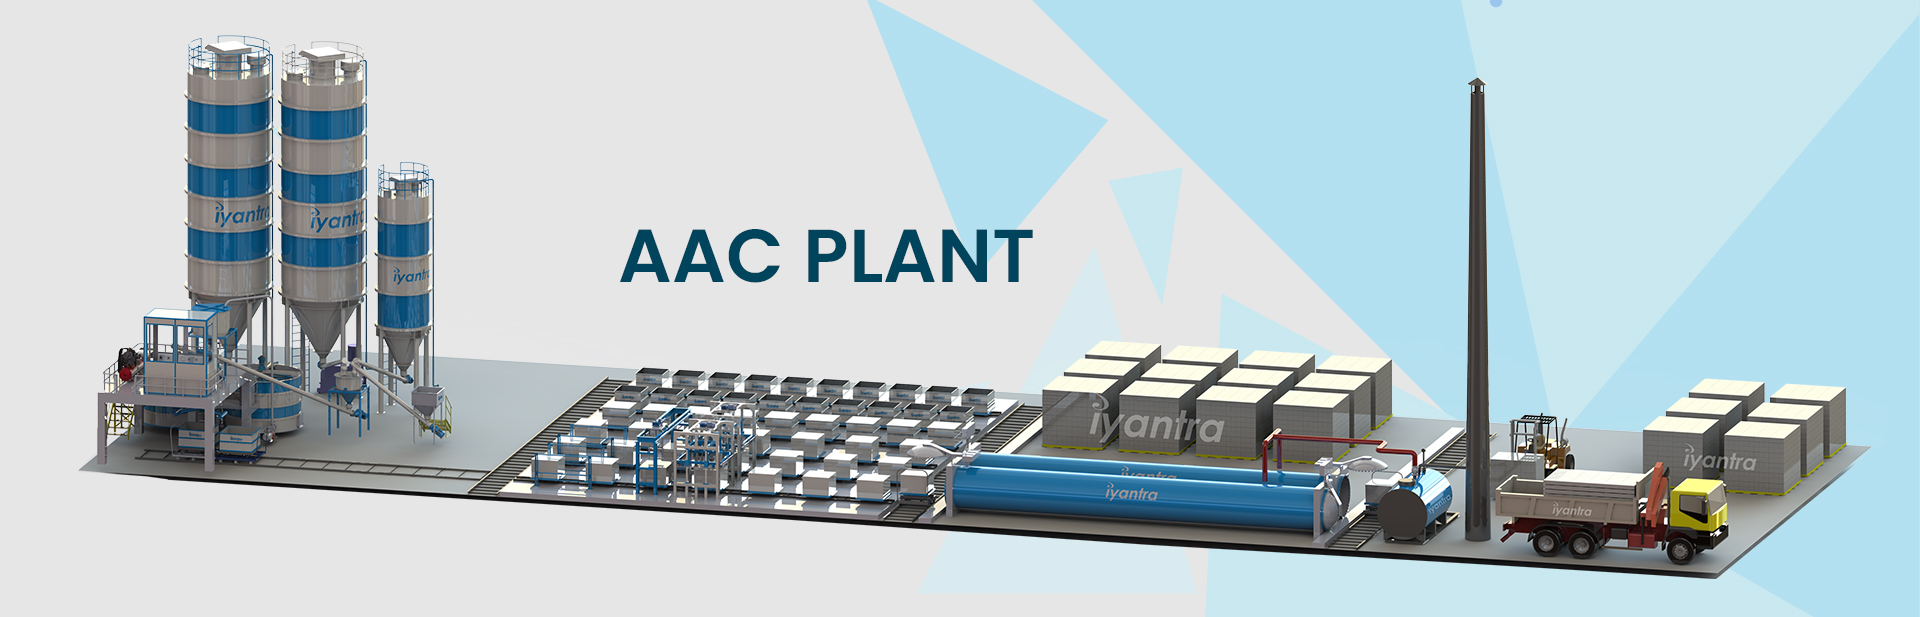 aac plant manufacturers visakhapatnam india